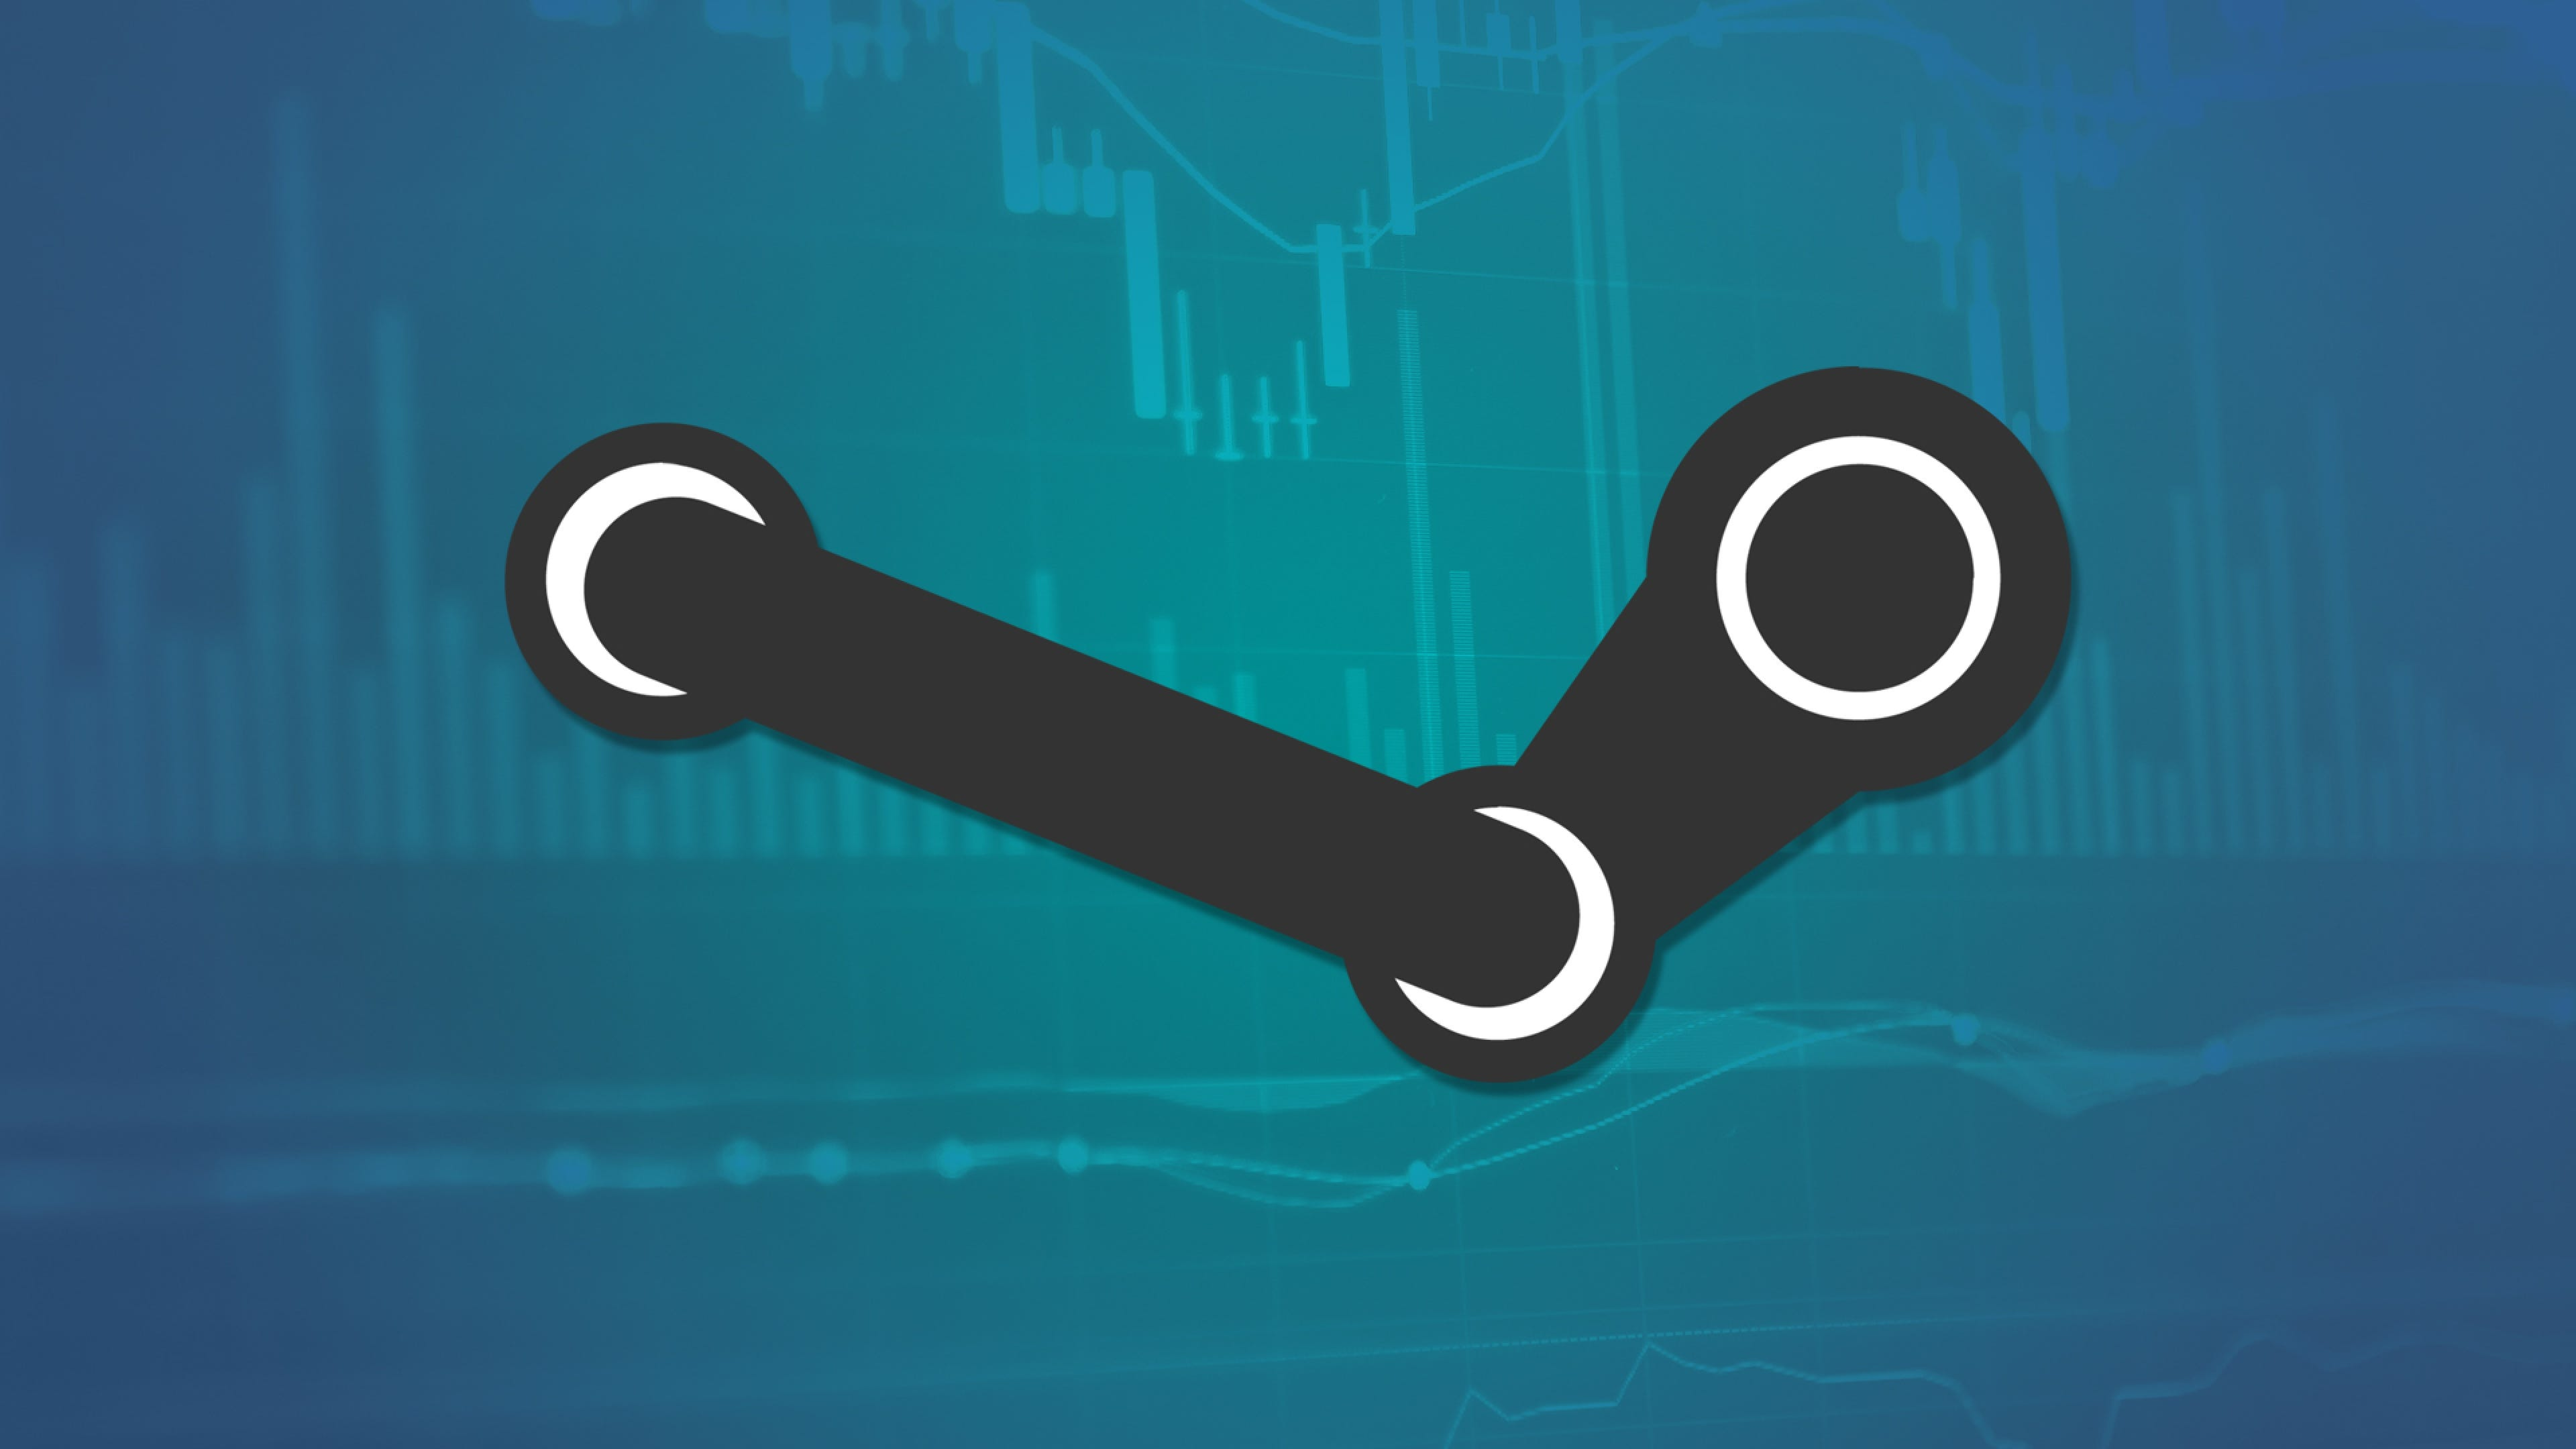 Five Tools to Analyze and Get the Most Out of Your Steam